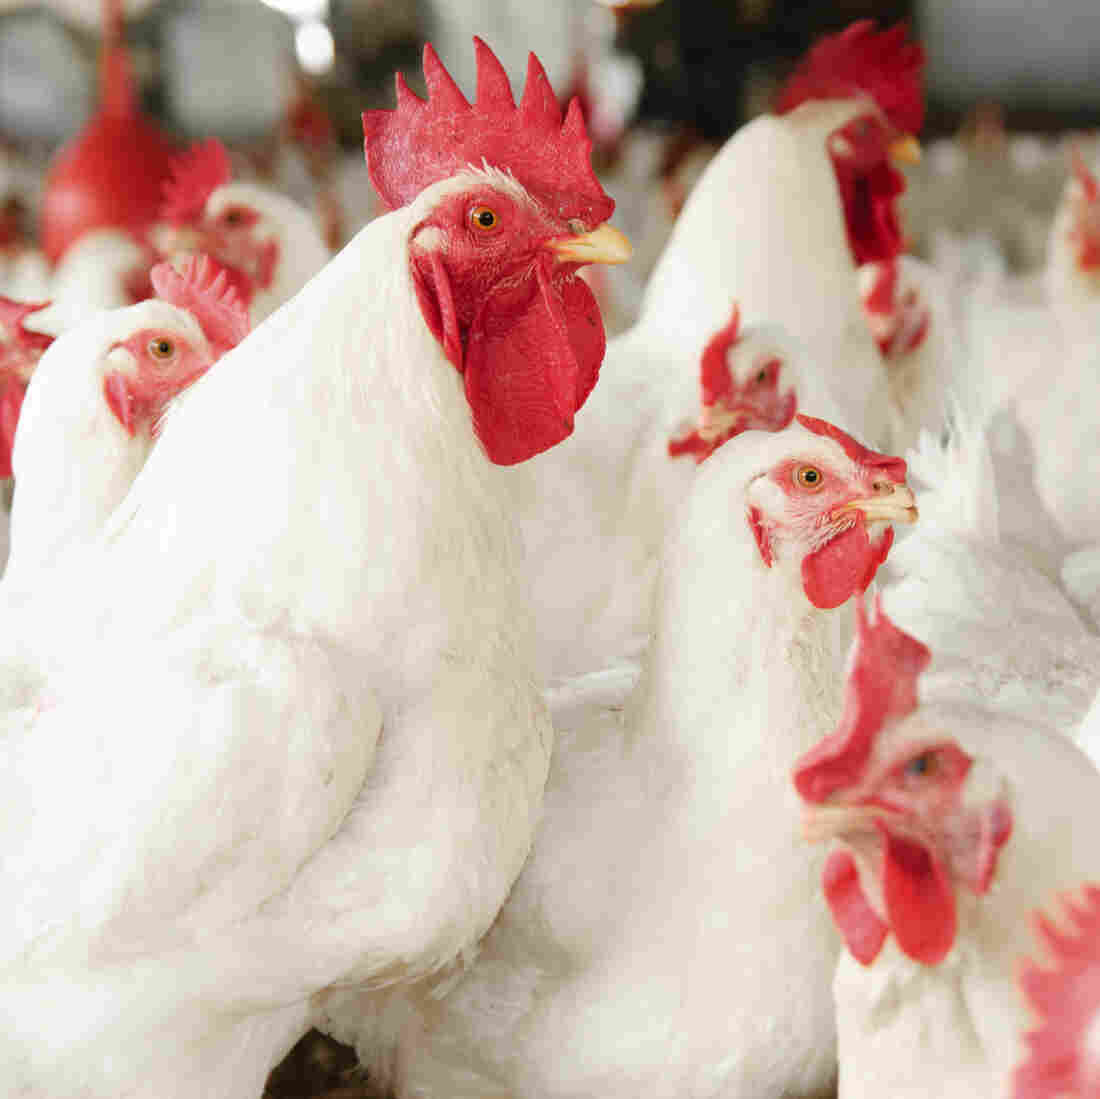 Americans Want Antibiotic-Free Chicken, And The Industry Is Listening